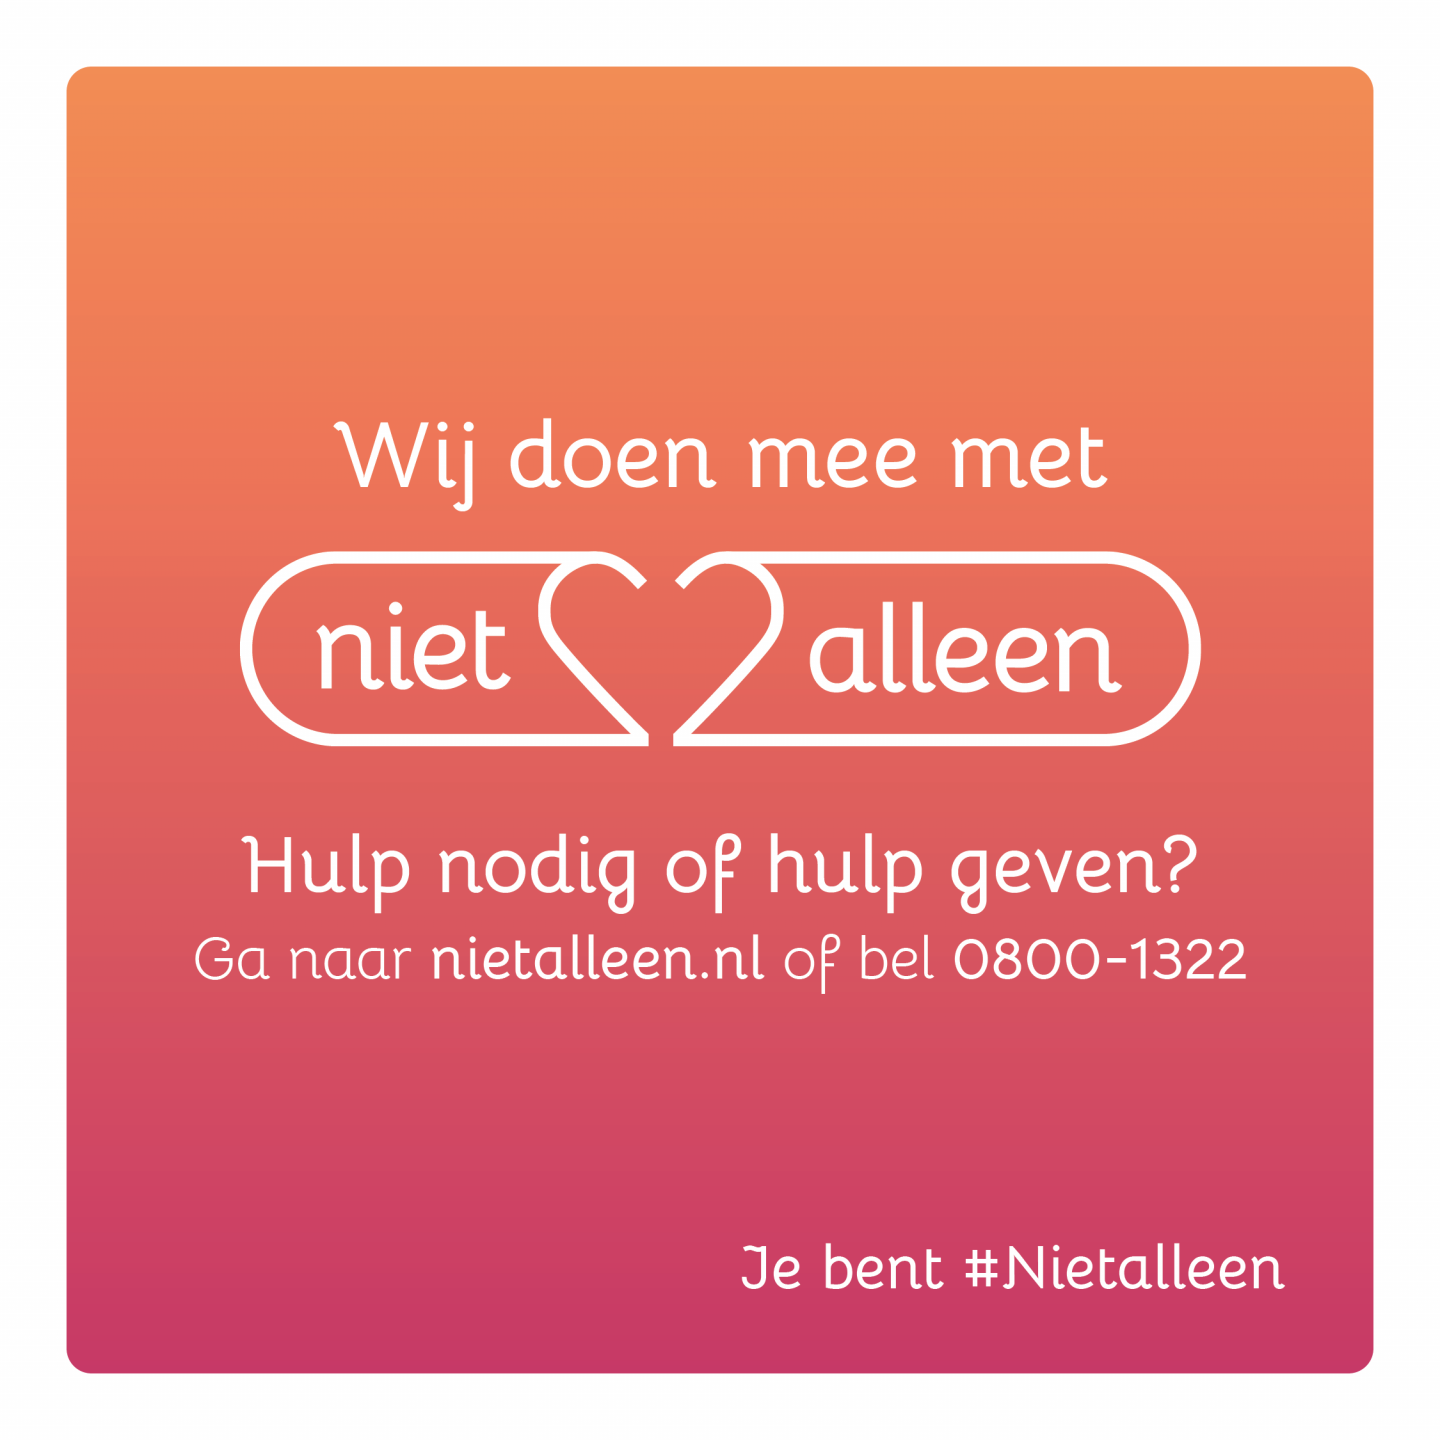 FB-Post_wijdoenmee